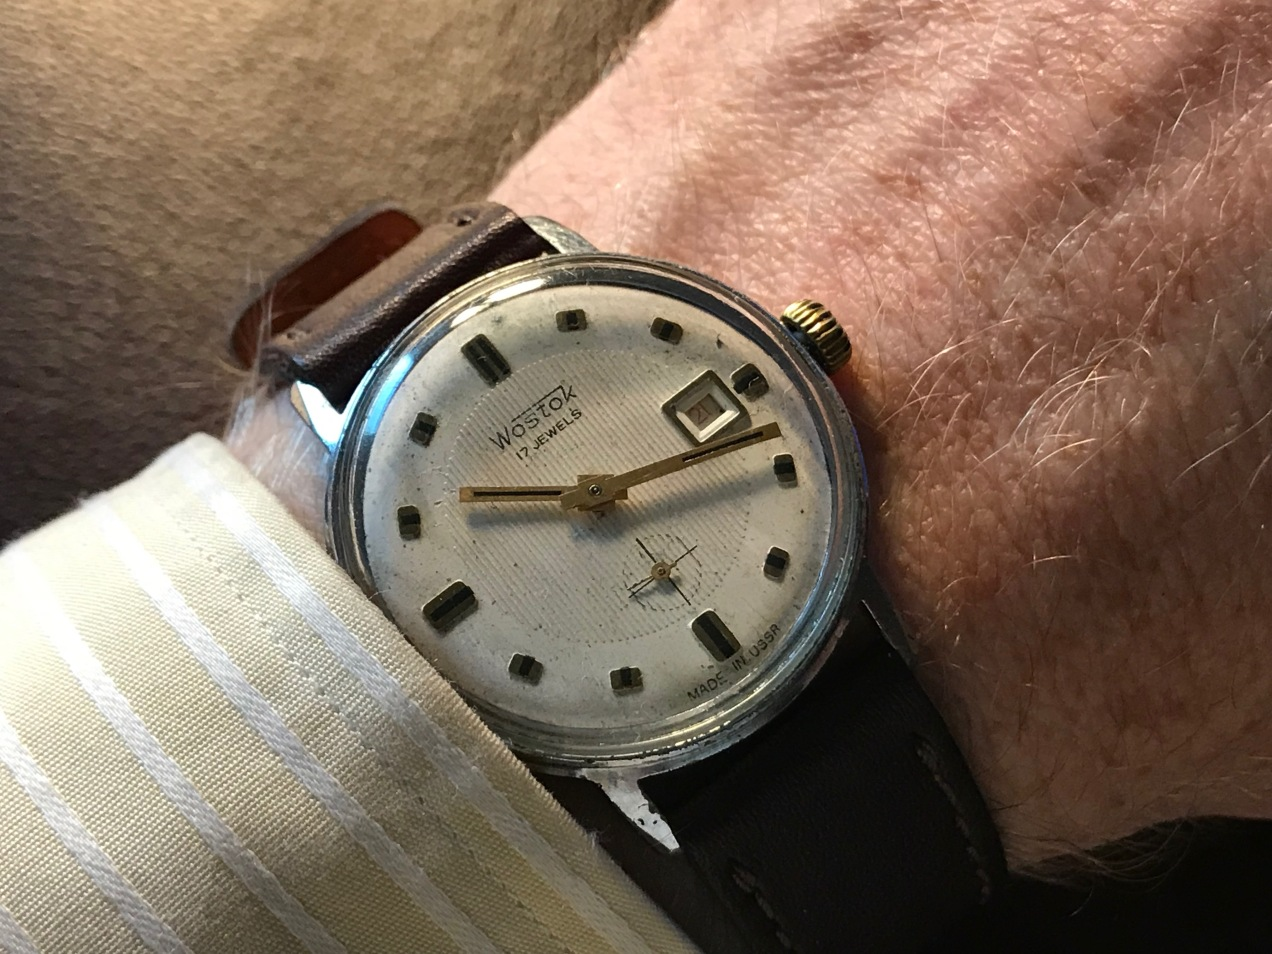 A 1956 Wostok Watch